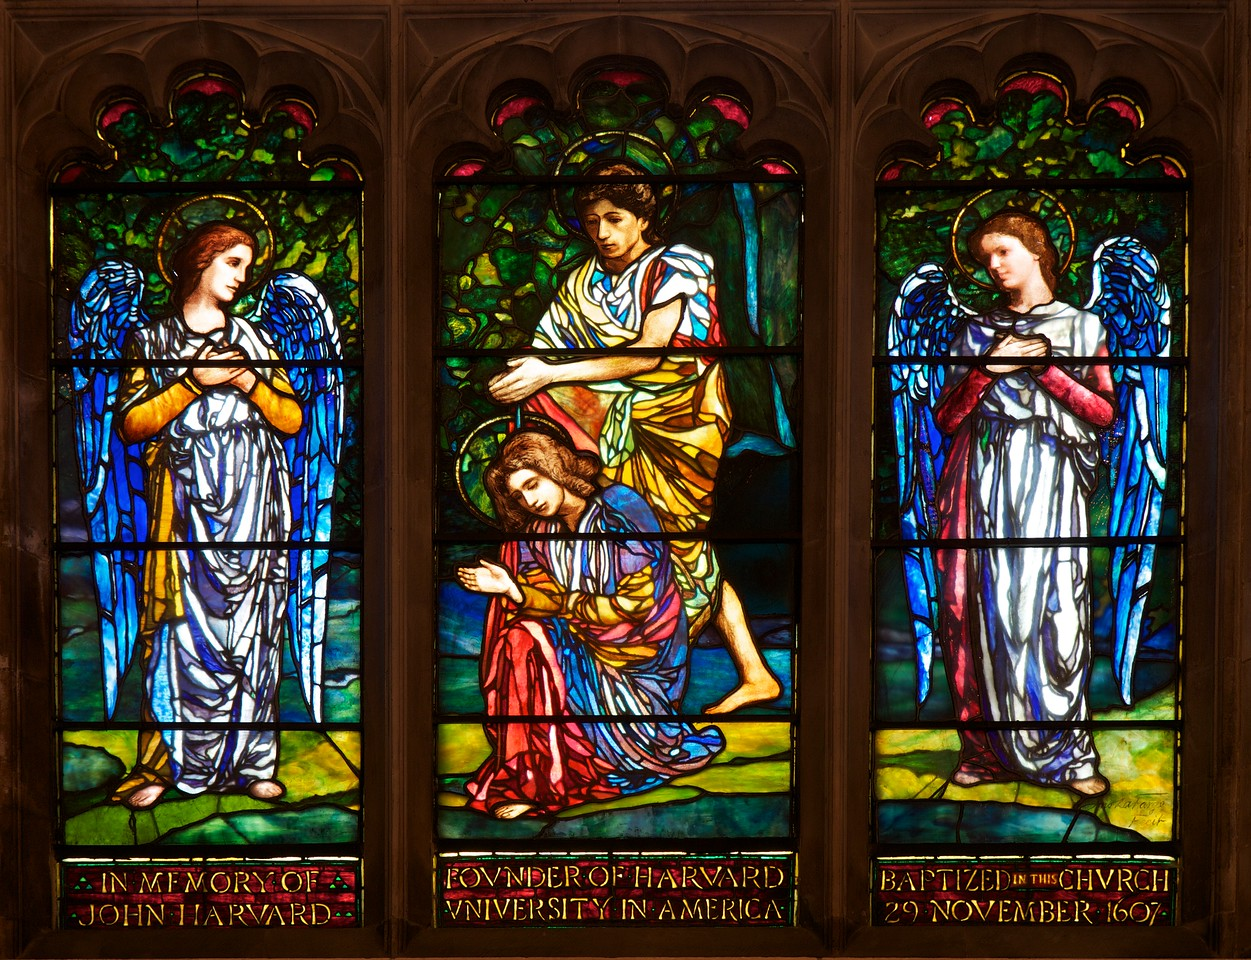 "Southward Cathedral, Harvard Chapel Stained Glass Window by John LaFarge <br><br> Founder of Harvard University John Harvard was born in near the church in Southwark. His father was a business associate of Shakespeare's family and Shakespeare is believed to have been present when John was baptized in the church in 1607, according to <a href=""http://www.sacred-destinations.com/england/london-southwark-cathedral"">Sacred Destinations.</a> <br><br> John Harvard is commemorated in the church by the Harvard Chapel, off the North Transept, restored with funds received from members of Harvard University. John was educated at Emmanuel College, Cambridge and graduated in 1635. ""The following year he married Anne Sadler and having no relatives left in Southwark, decided to join his brother Puritans to form a godly commonwealth in the New World. <br><br> Arriving in Boston, with his library of 320 volumes, Harvard was admitted a townsman of Charlestown and ministered in the 'First Church'. He was described as a scholar and lover of learning. He died childless in 1638. He left his books (of which only one remains) and half his fortune, £779 17s 2d, to the college of Newtown, a foundation for the 'education of English and Indian youth in knowledge and godliness'. Newtown became Cambridge, Massachusetts and the college became Harvard University"" <a href=""http://cathedral.southwark.anglican.org/visit/area-2"">according to the church website.</a> <br><br> Two panels of stained glass windows are the highlight of the chapel. The first is a window given by the then American Ambassador to London, Joseph Choate, in 1905.  Depicting the baptism of Christ by John the Baptist, it is by American artist John La Farge. It uses a technique of mixing several colors in one piece of opalescent glass. The second shows the Harvard crest (Veritas, Latin for ""Verity"" or ""Truth"") and Emmanual College, Cambridge with an inscription ""This Window, Damaged During World War 2 By Enemy Bombing, Was Restored In 1948 Through The Generosity of Harvard Alumni In The United States of America."" I don't know the artist that created the window."